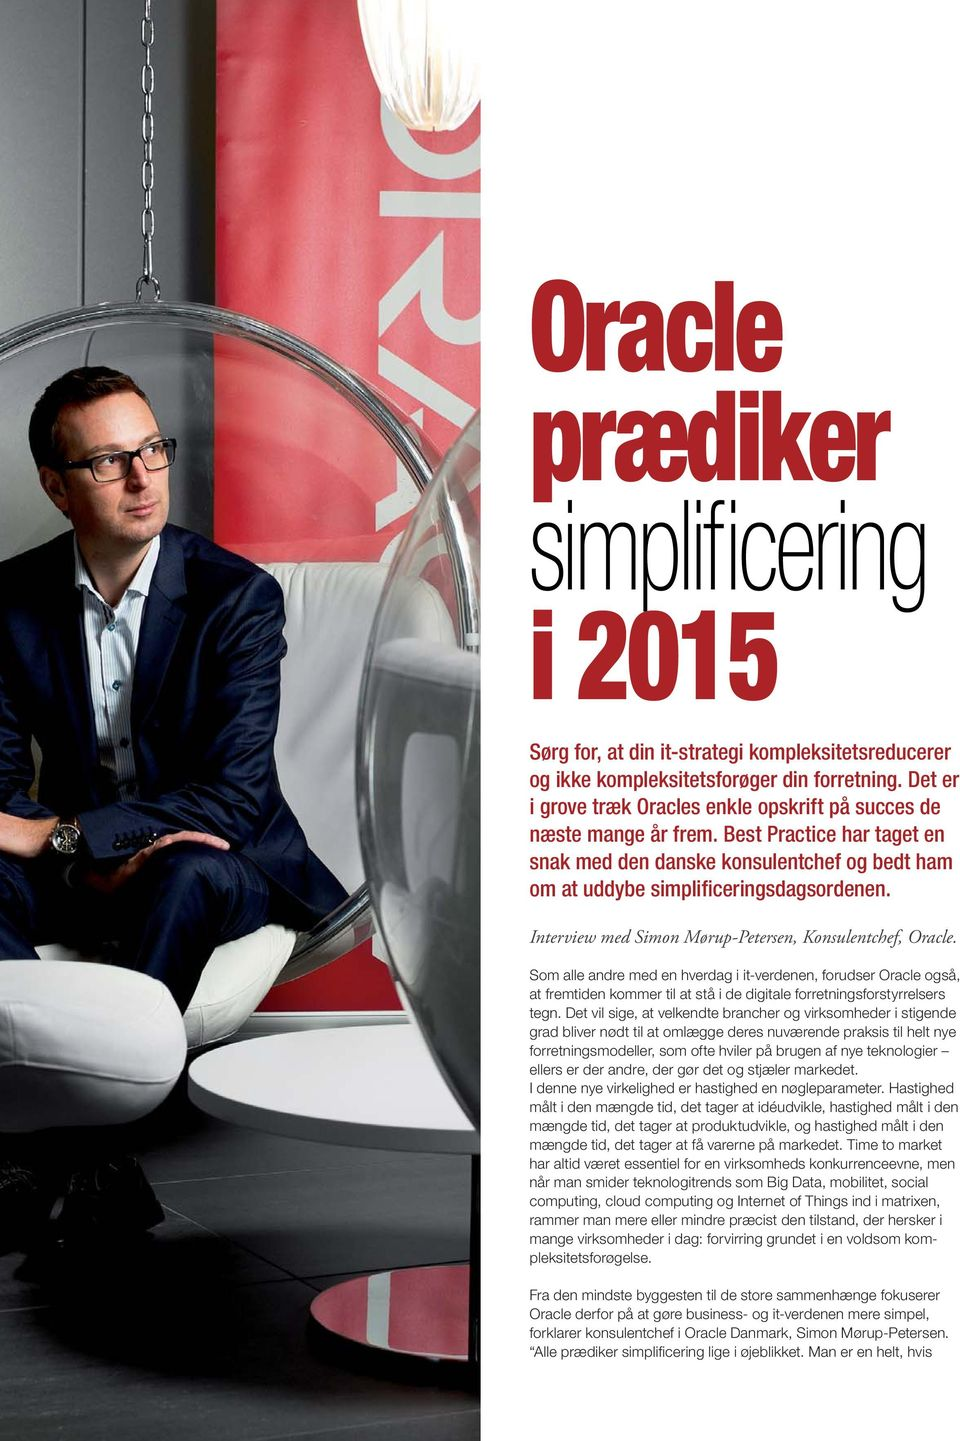 Interview med Simon Mørup-Petersen, Konsulentchef, Oracle.